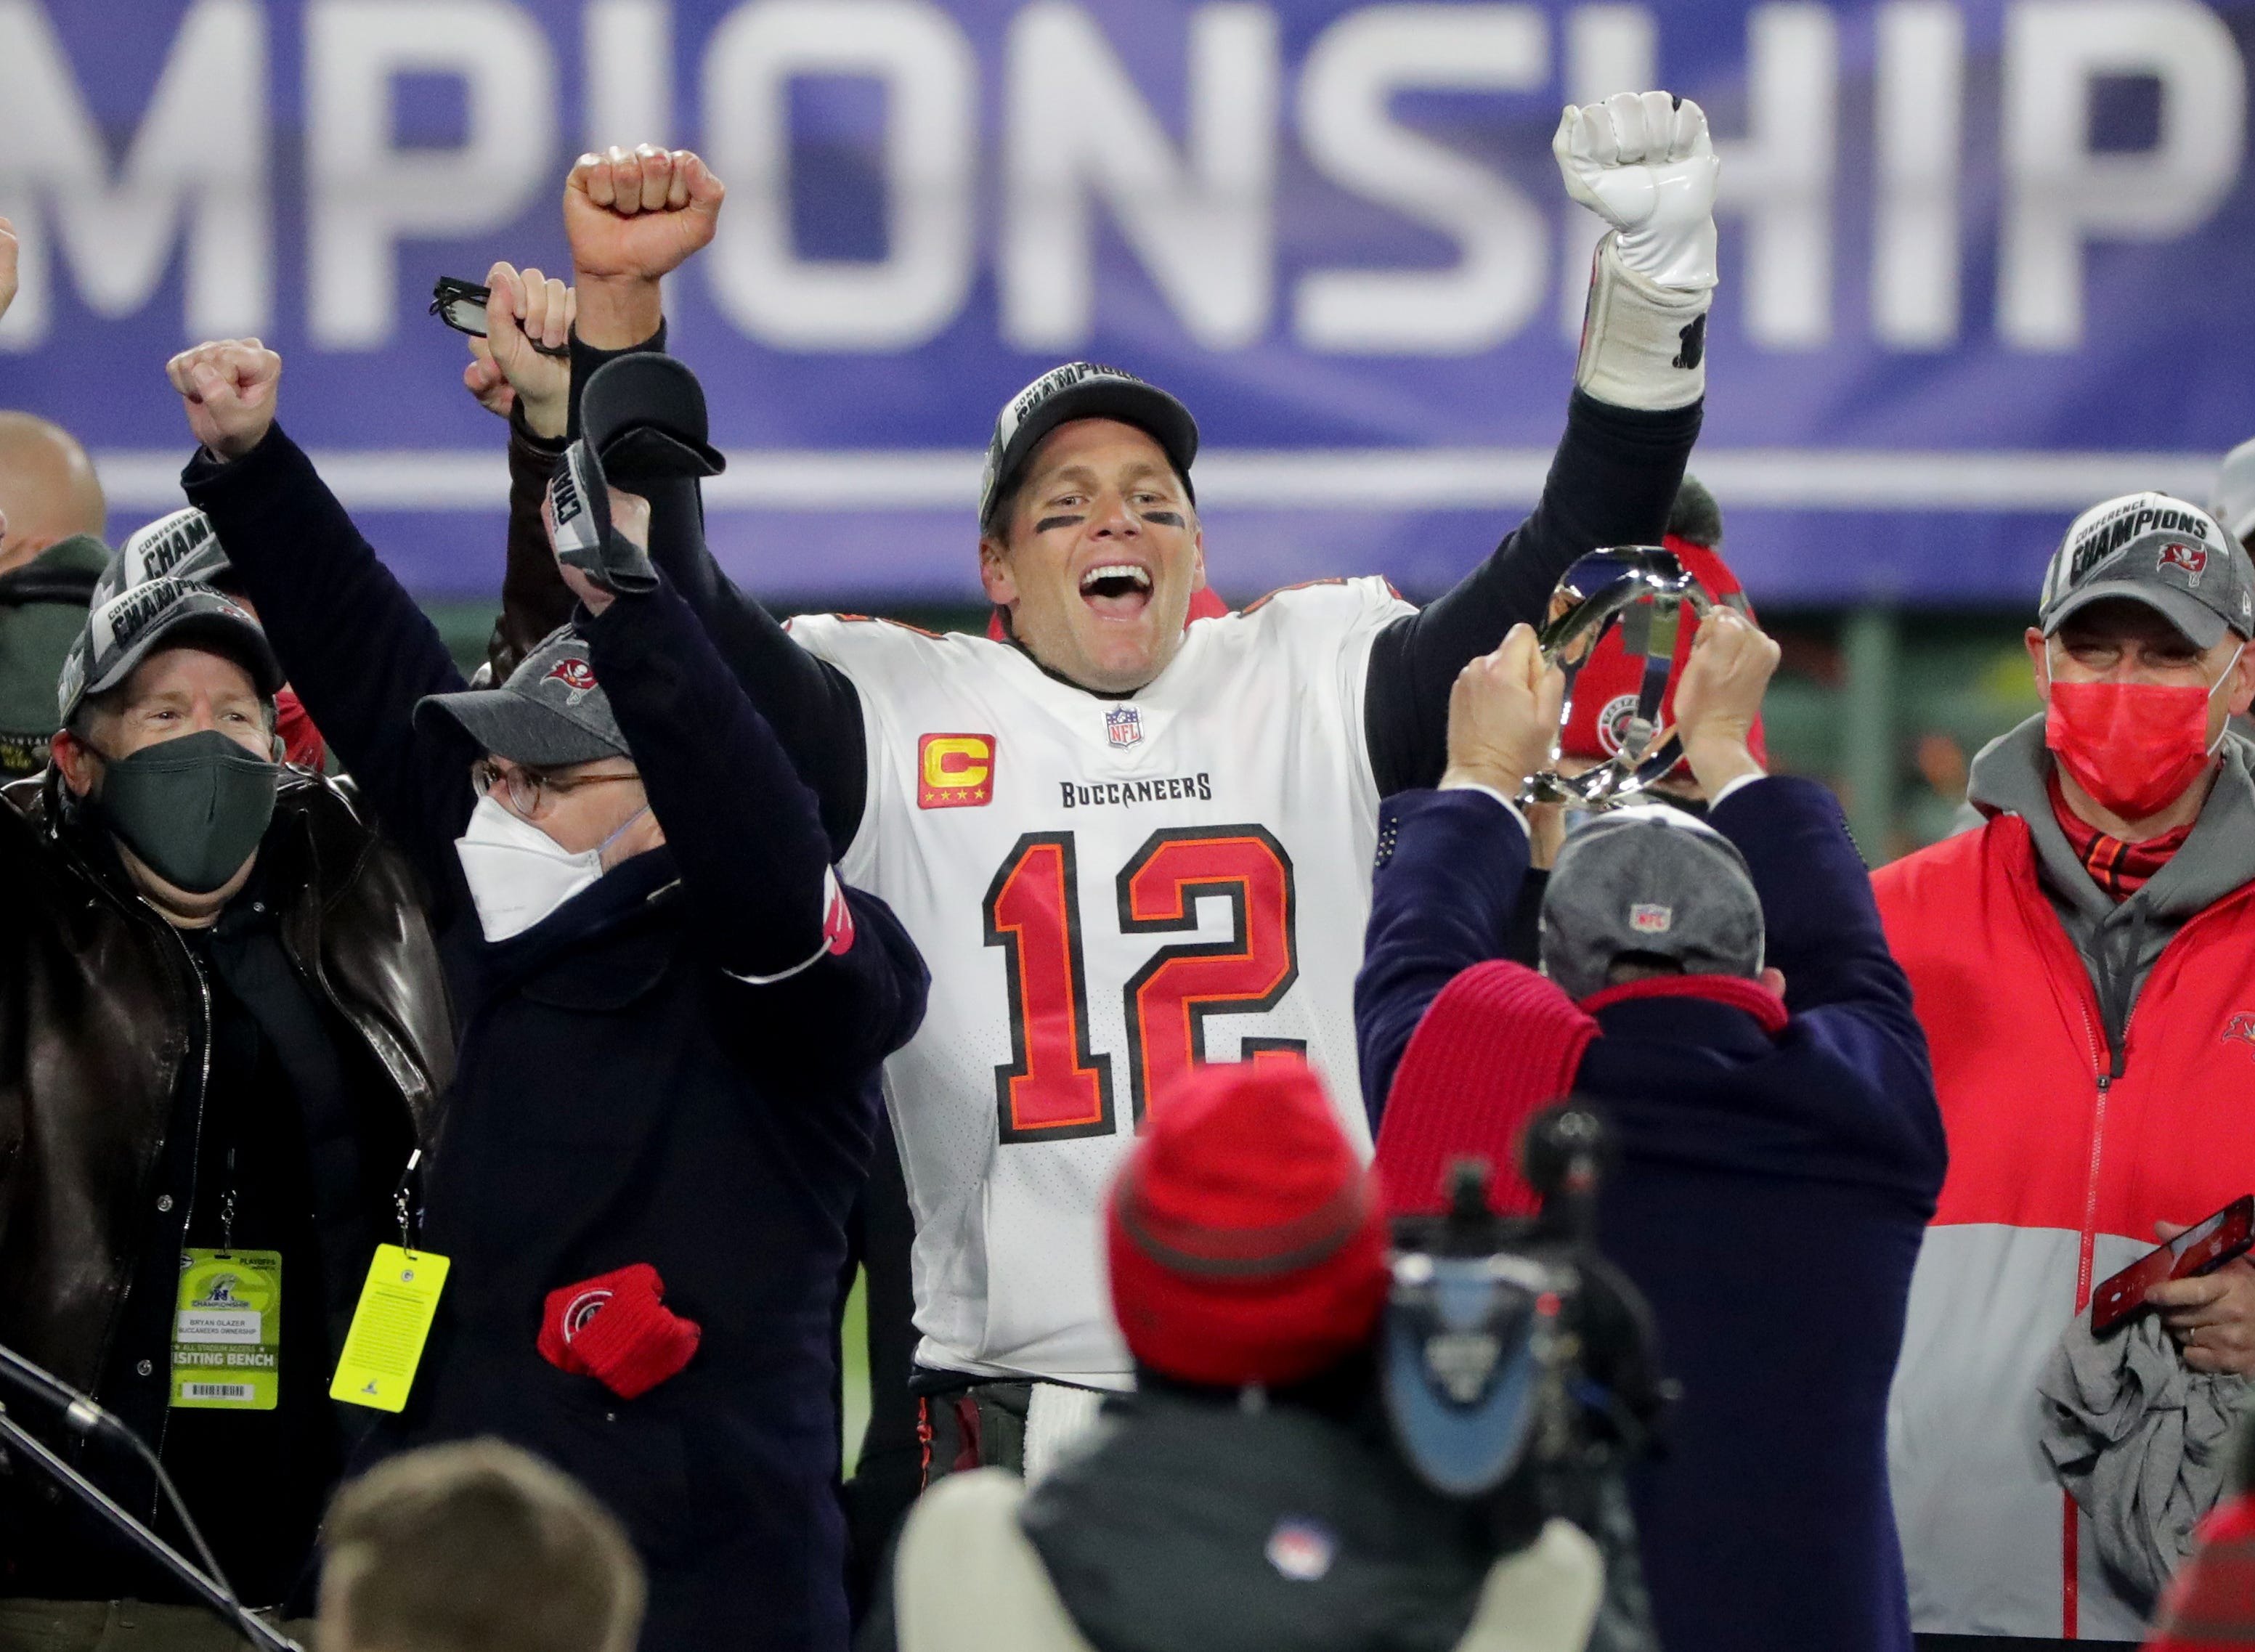 Opinion: Tom Brady taking Buccaneers to Super Bowl ends Brady-Belichick debate. Or does it?